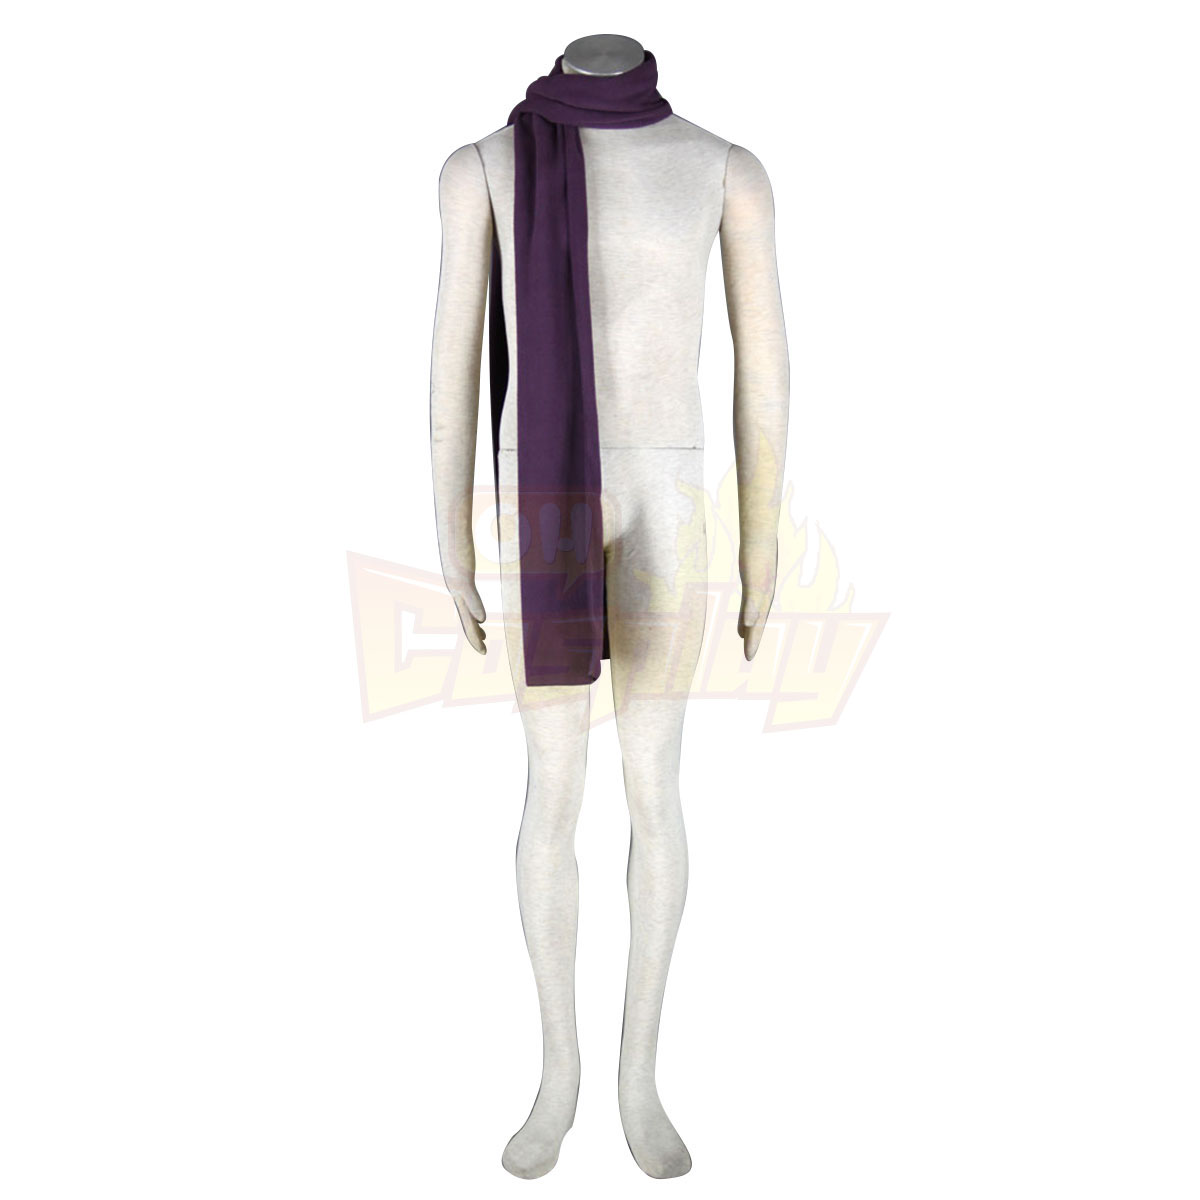 Deluxe Vocaloid Taito Cosplay Costumes